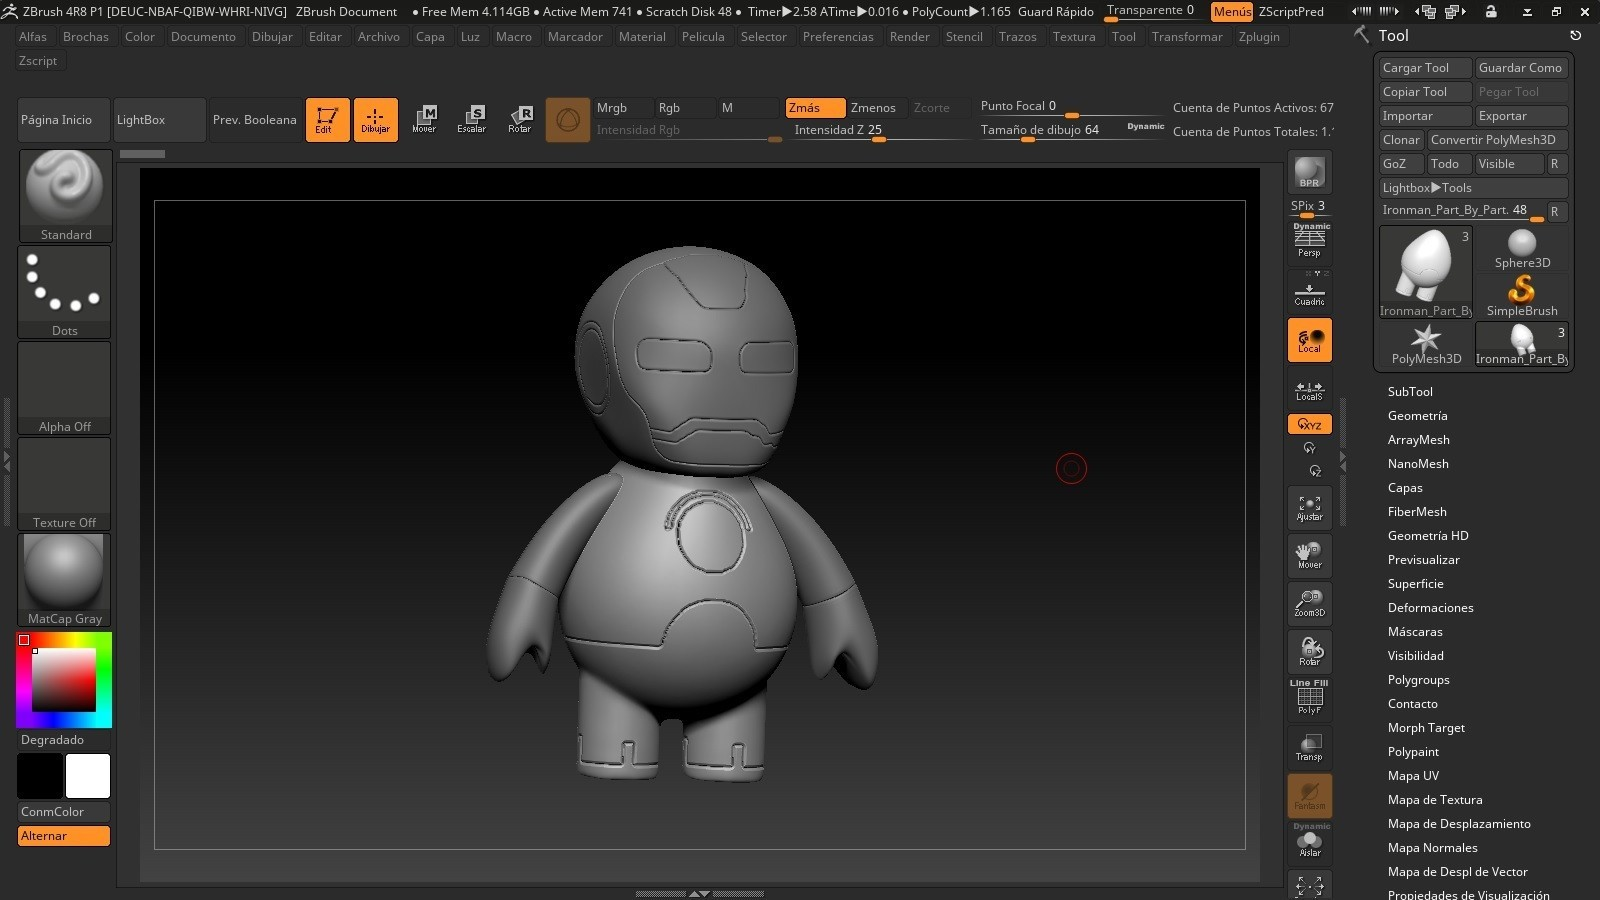 hh.jpg Download free STL file Iron Man Cartoon • 3D printing model, Fizzer2130